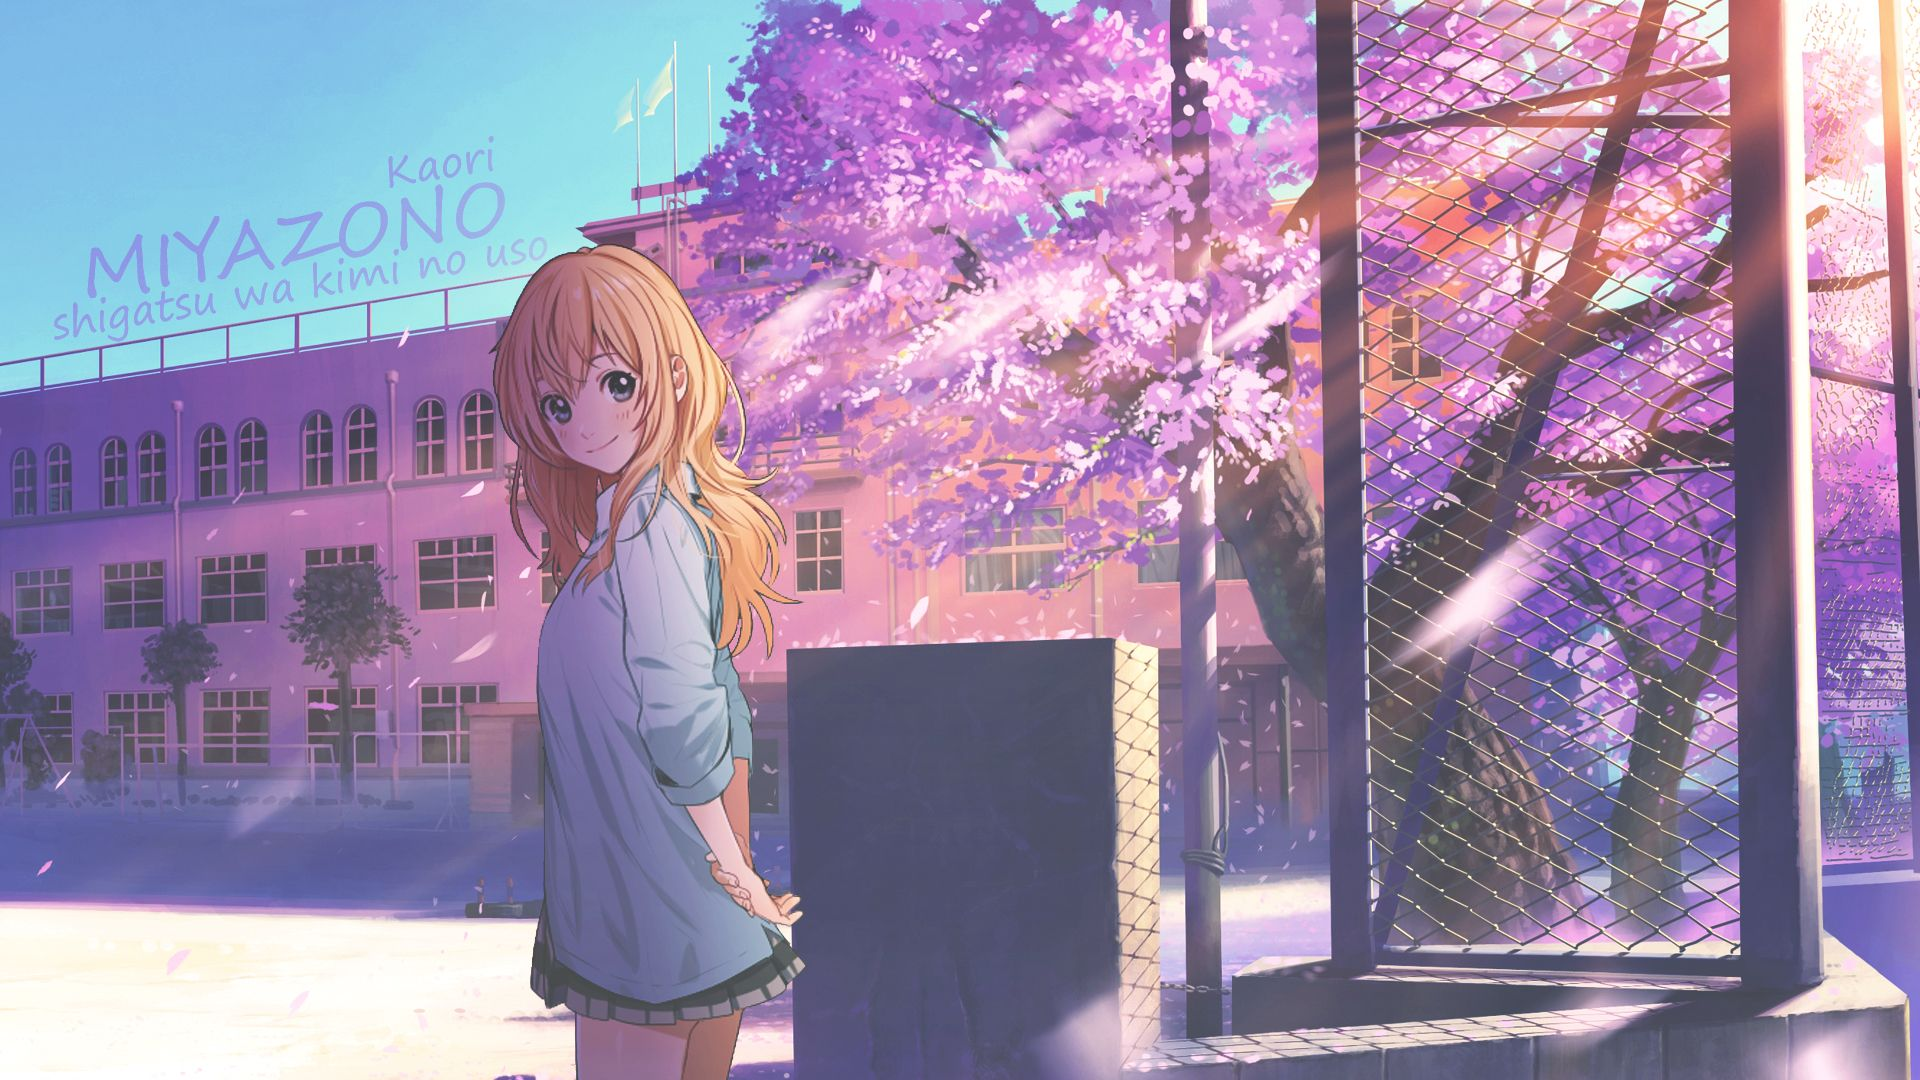 Your Lie In April Computer Wallpapers Desktop Backgrounds 1920x1080 Id 629528 Your Lie In April Kaori Miyazono Lie In April